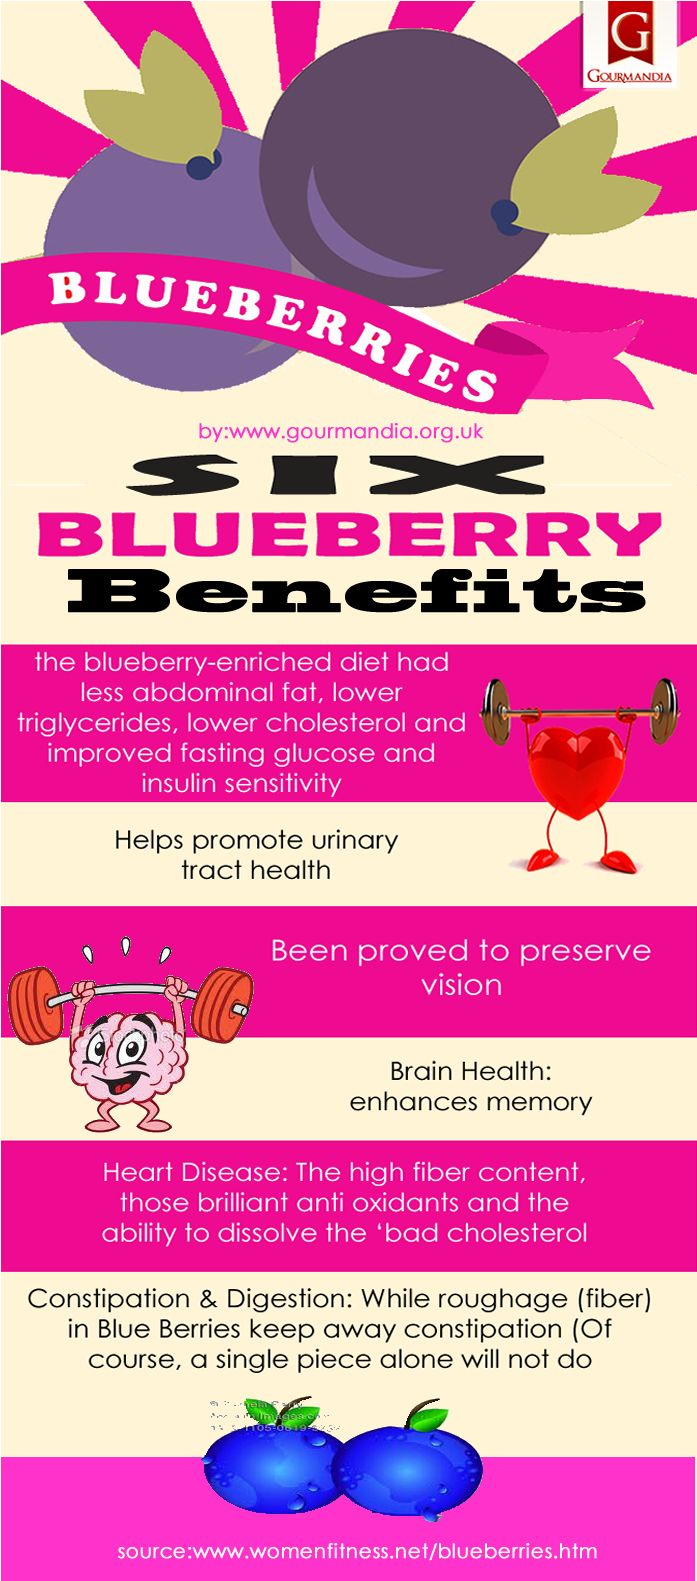 This shows how blueberry has many contributions to our health. Eating it may result to wellness of the body.